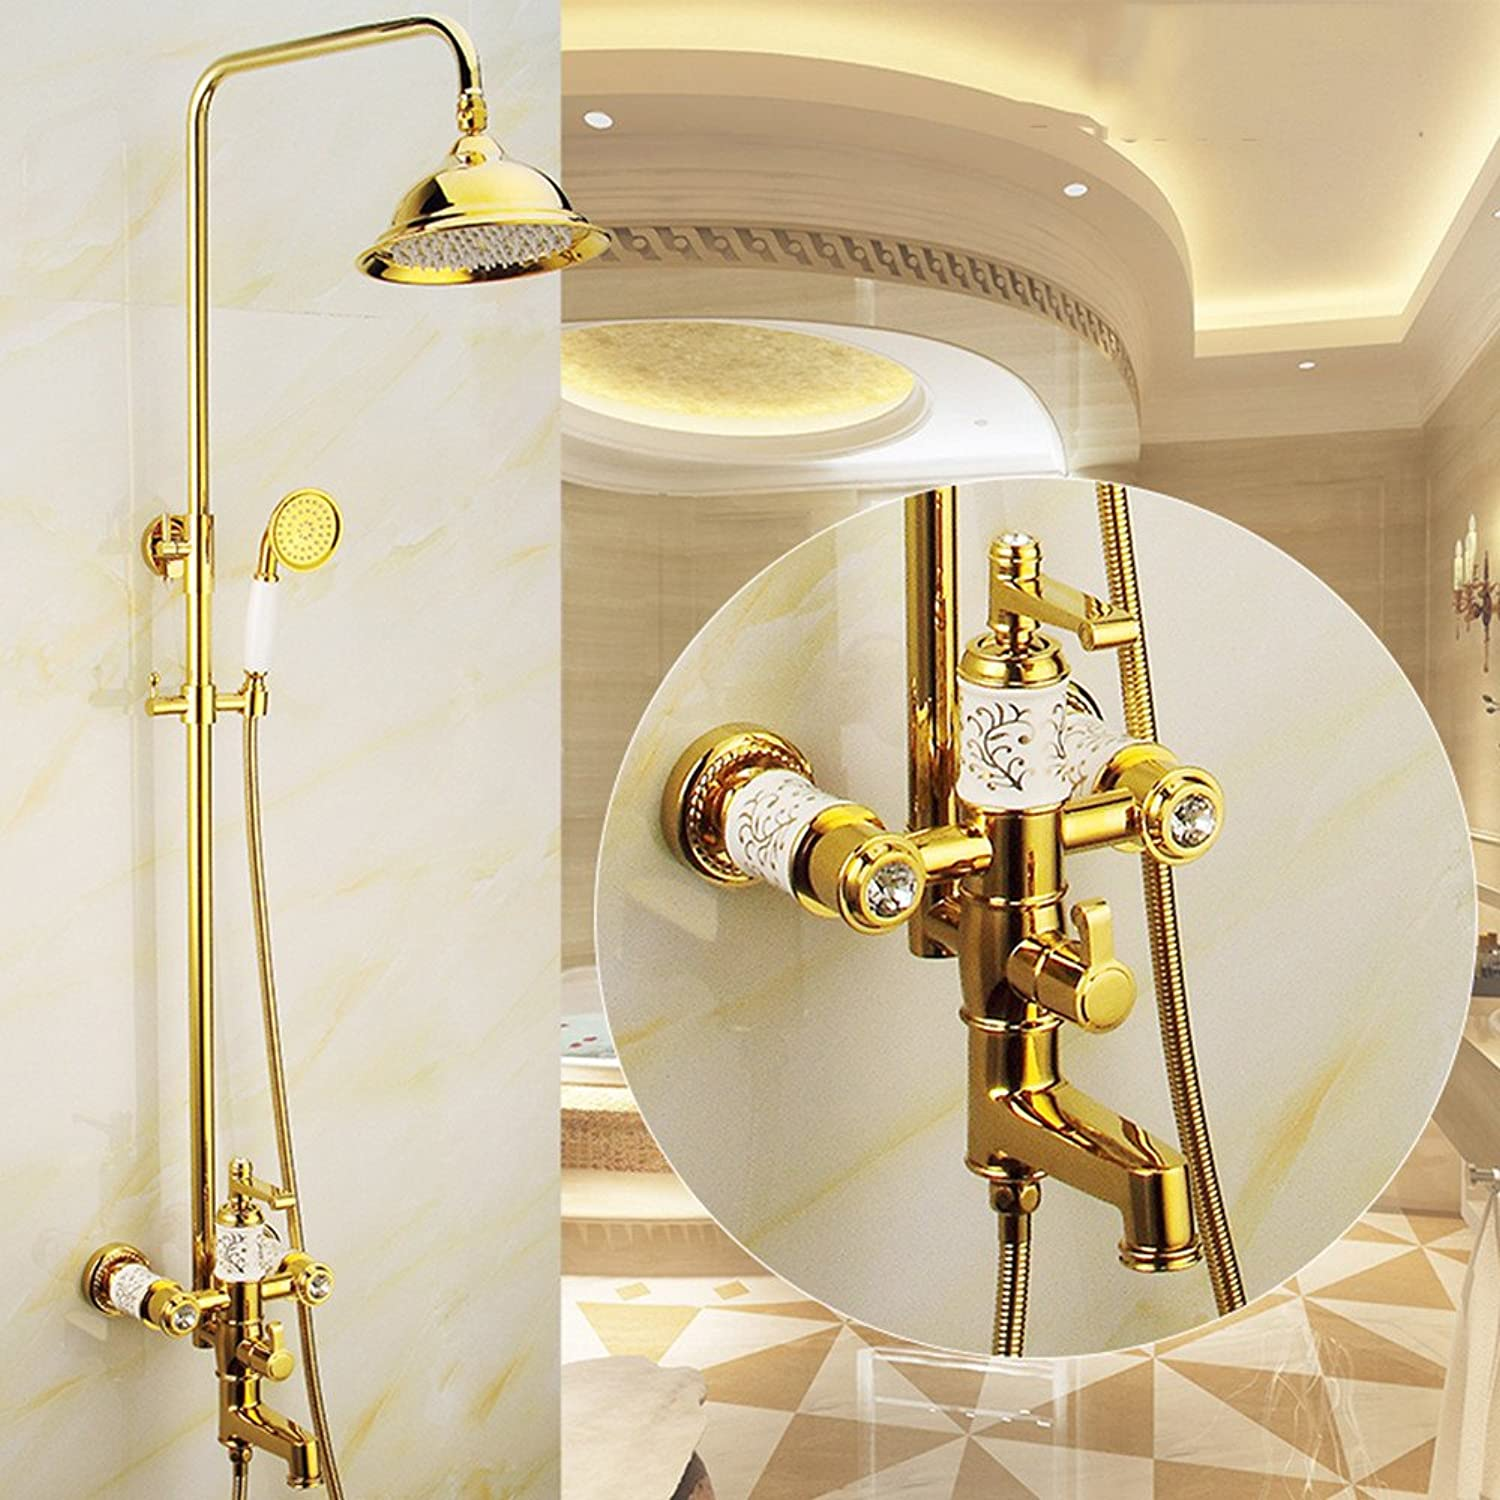 Copper Antique Shower Set Continental golden Shower with Lift Faucet Set